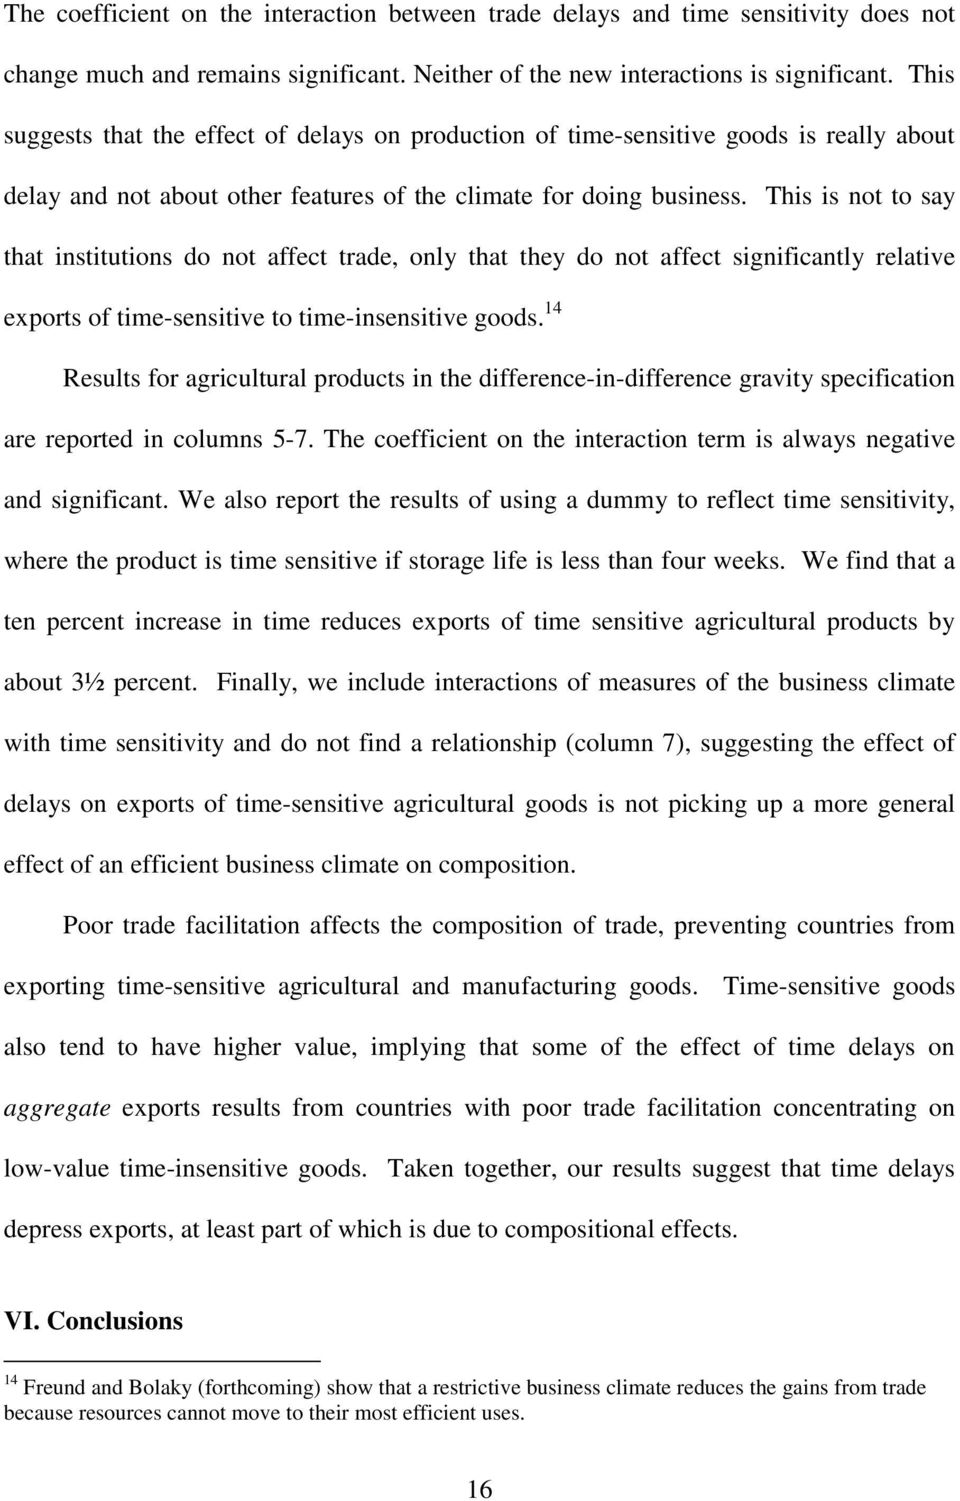 This is not to say that institutions do not affect trade, only that they do not affect significantly relative exports of time-sensitive to time-insensitive goods.